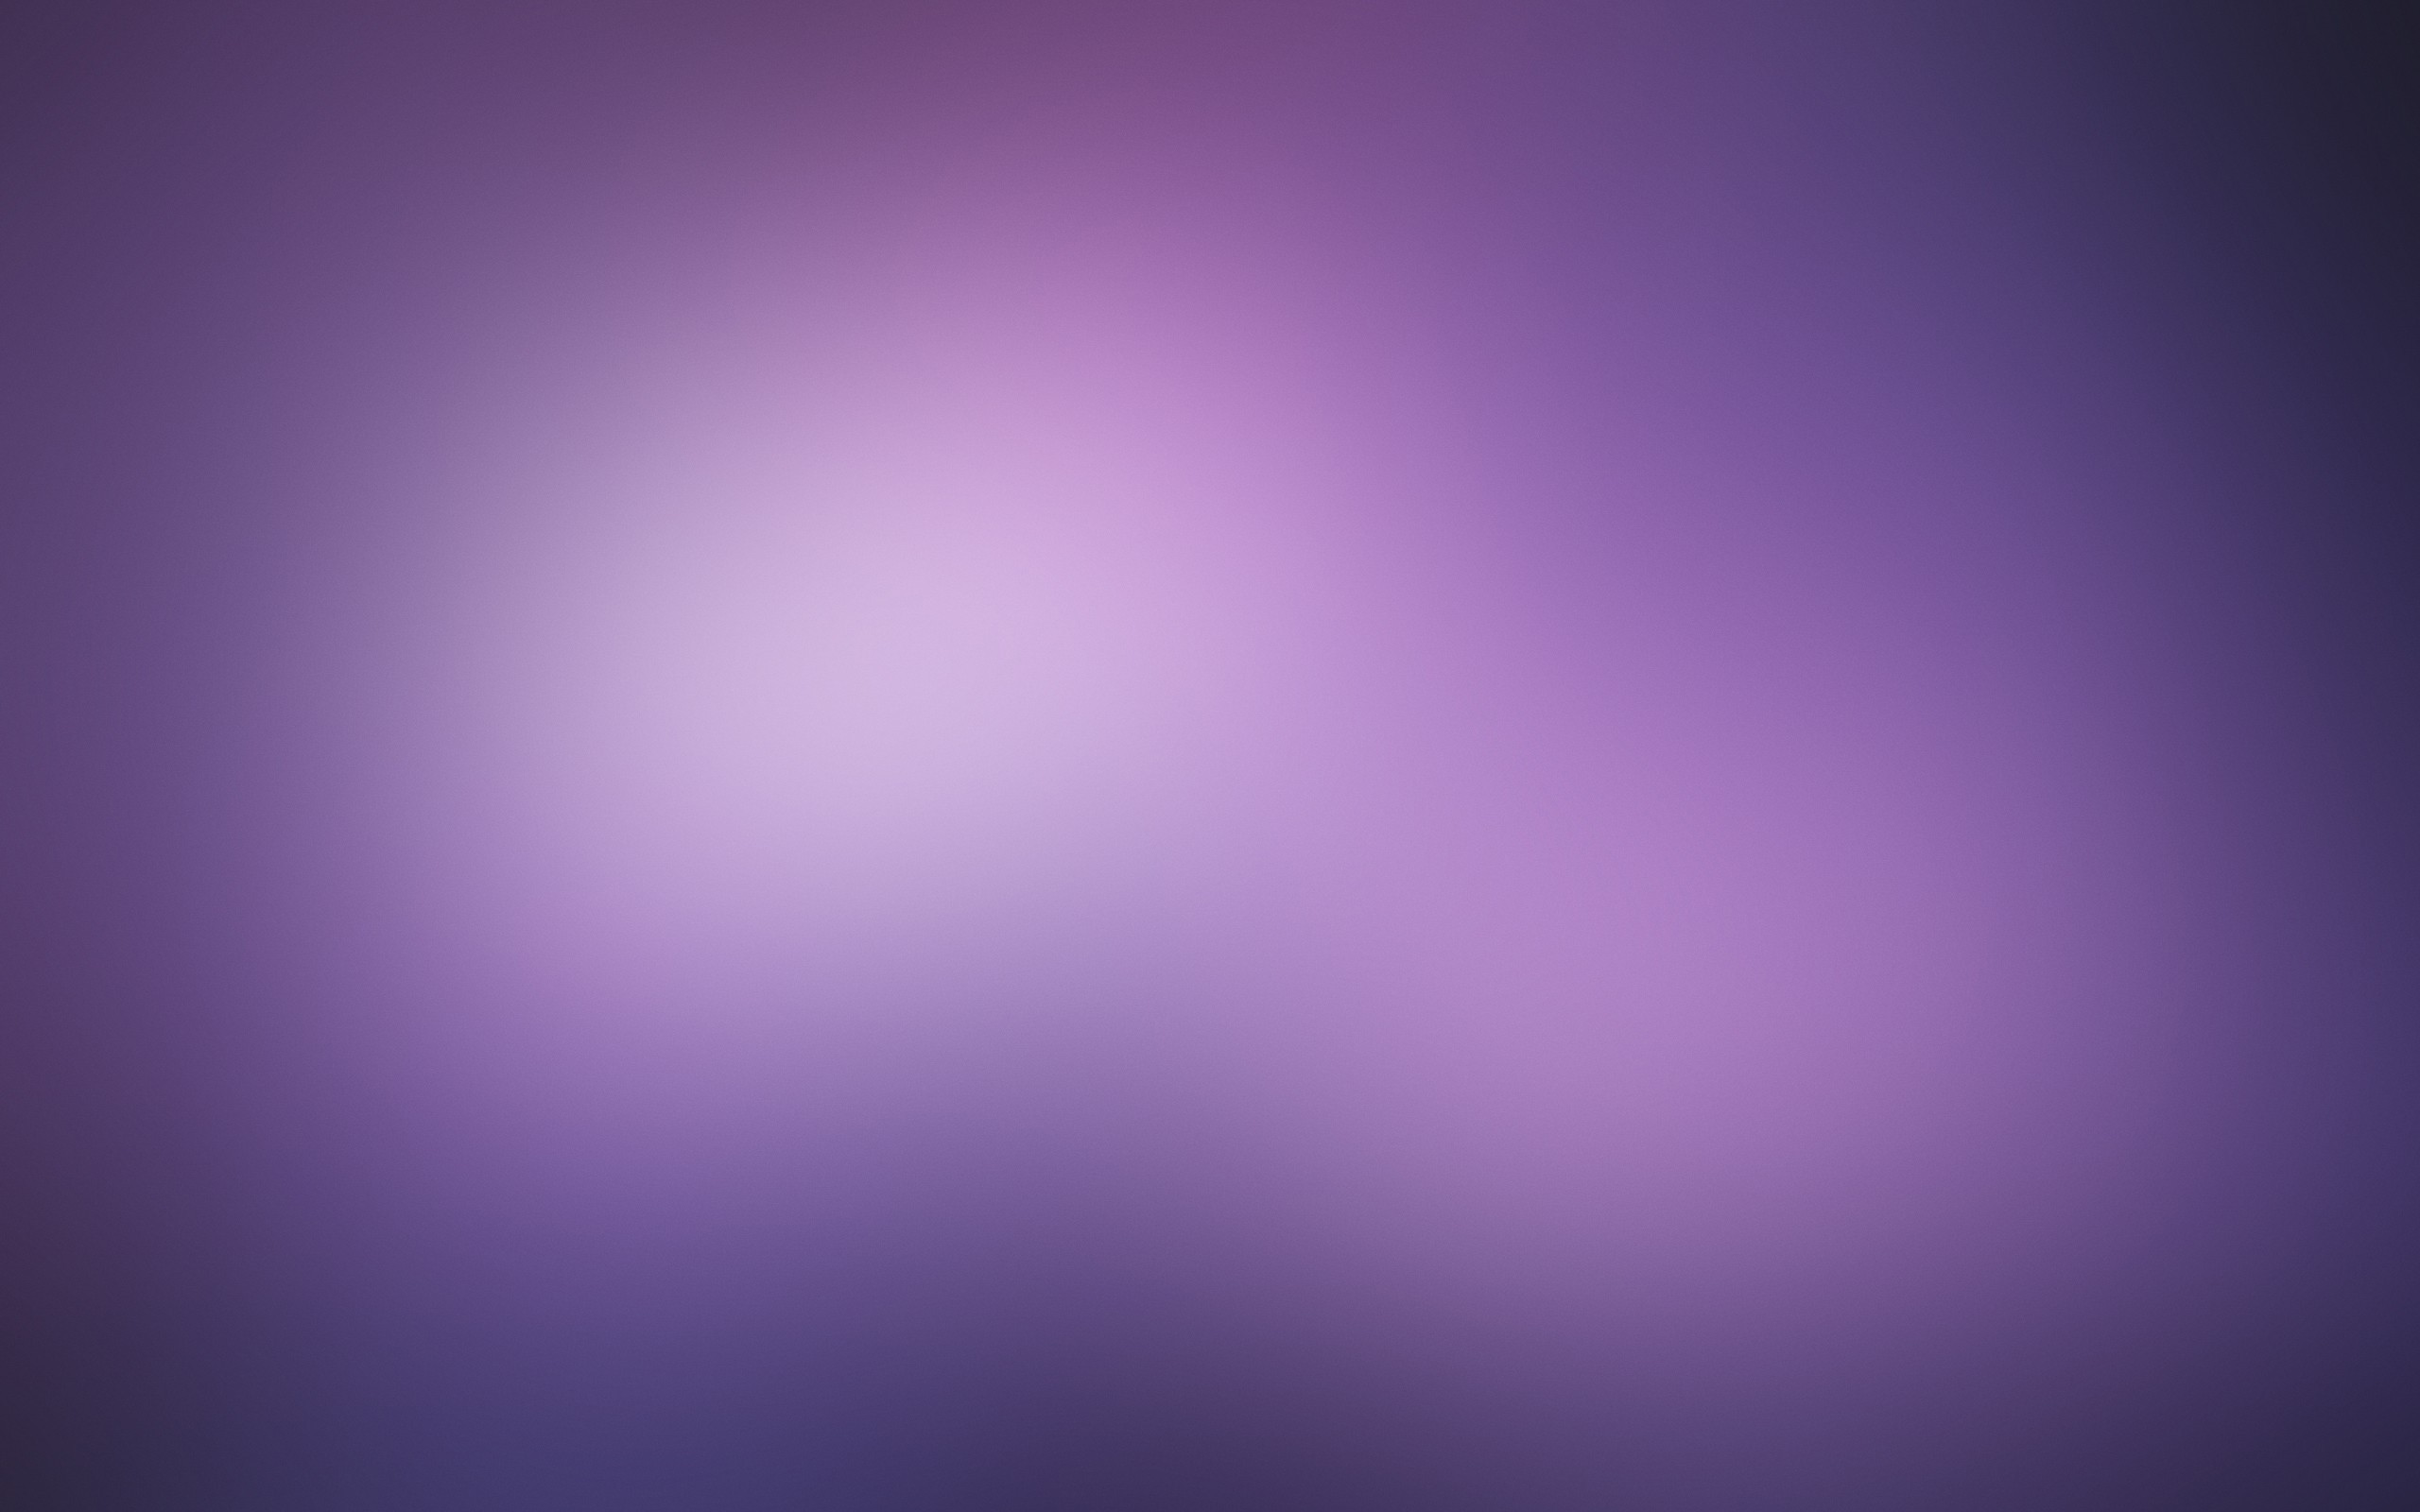 Purple gradient wallpaper 26053 2560x1600 px for Purple wallpaper for walls